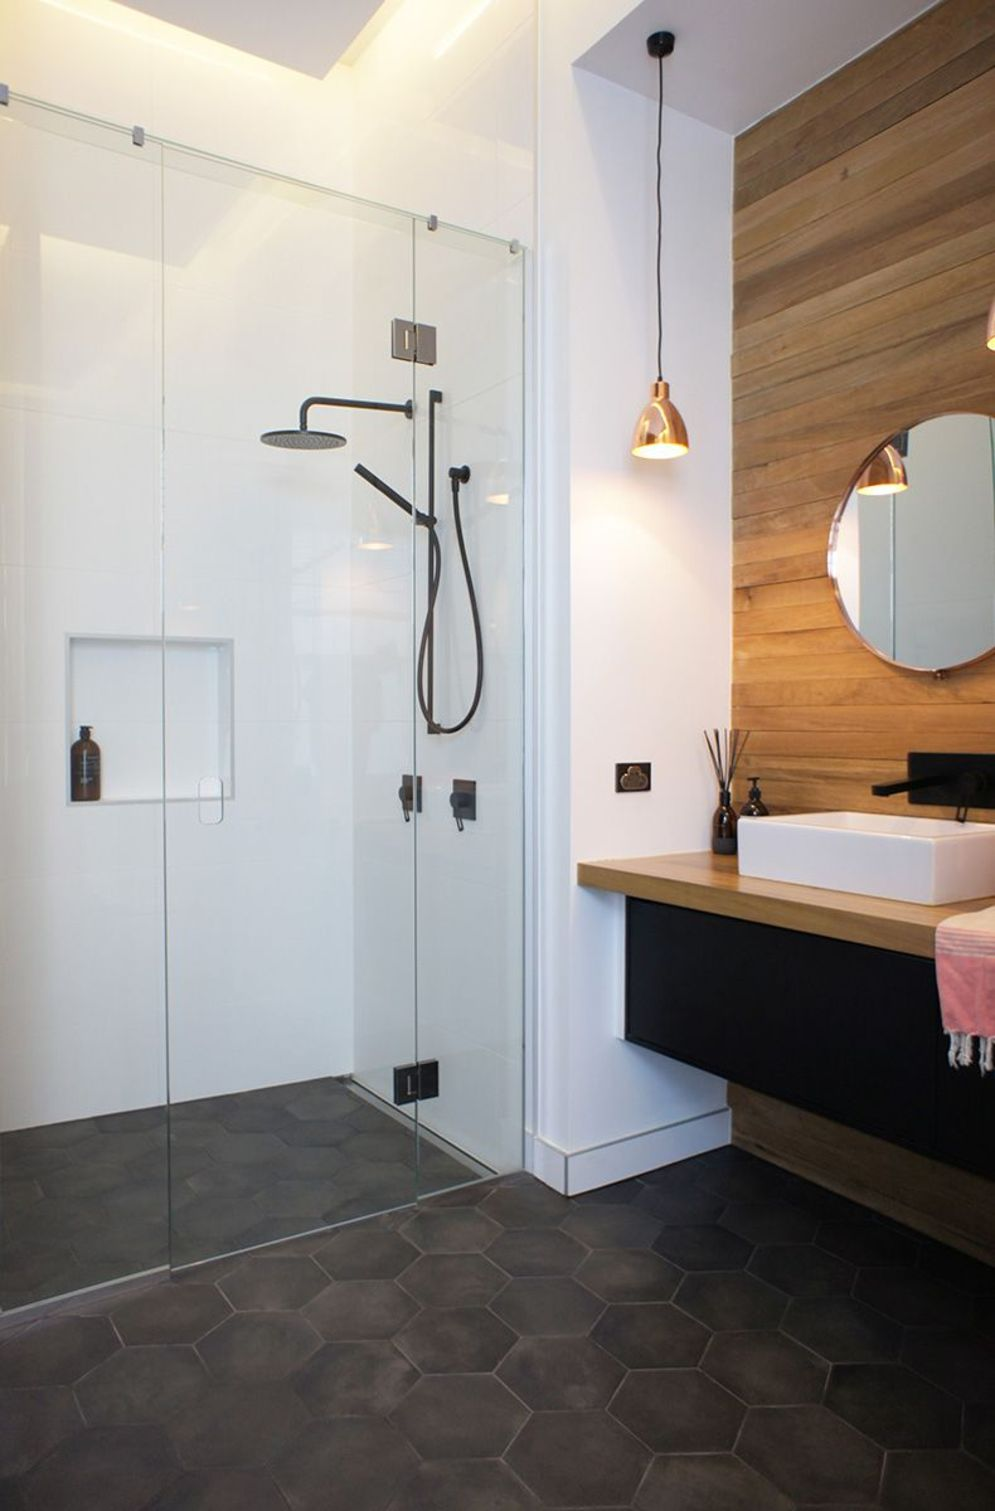 Most savvy bathroom designs with elegant wood finish to give more natural feel Image 1